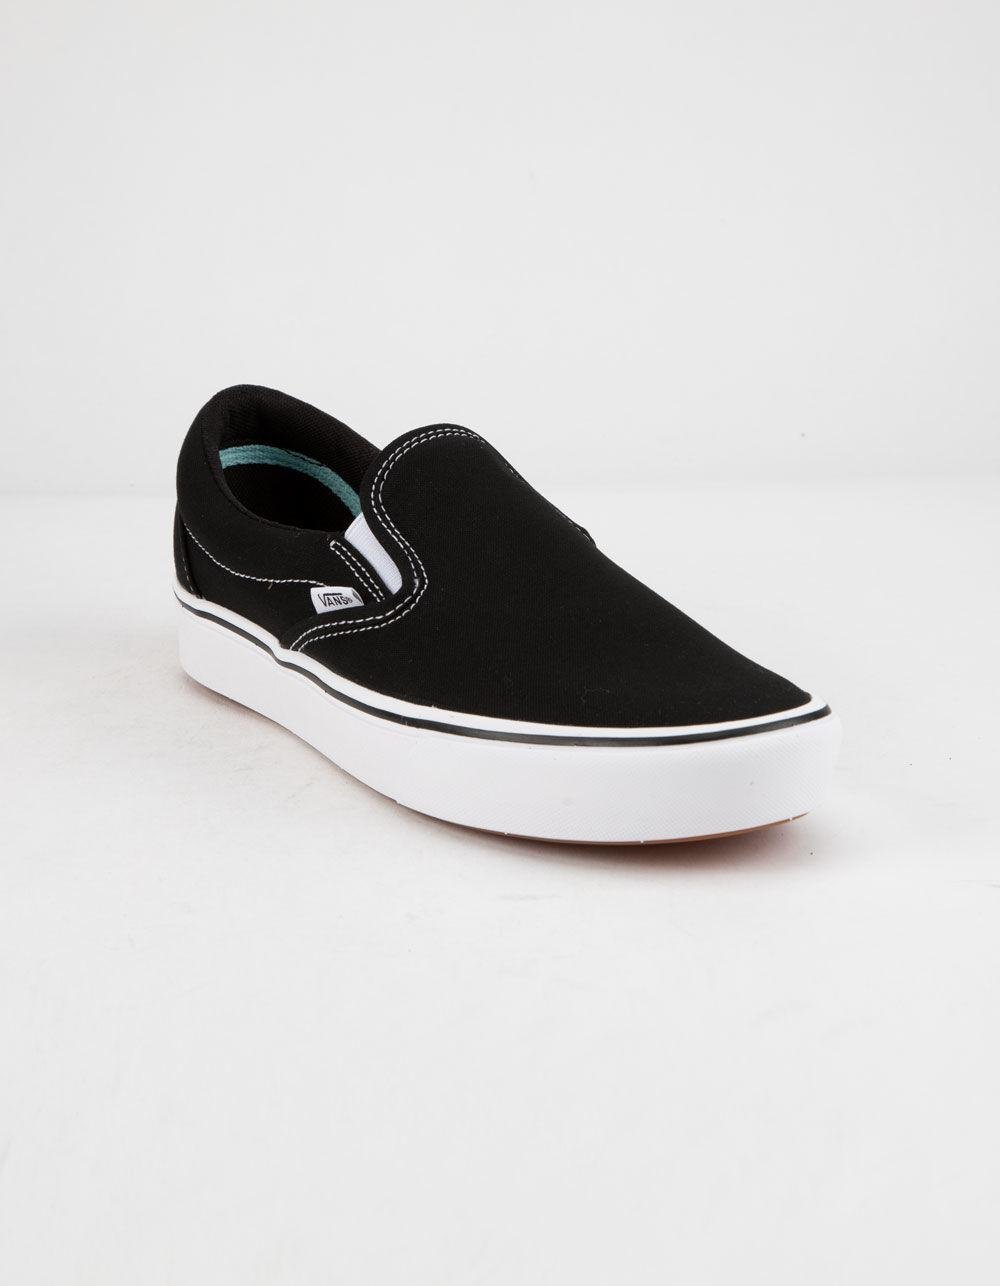 27e0b49f559 Lyst - Vans Comfycush Classic Slip-on Black   True White Shoes in Black